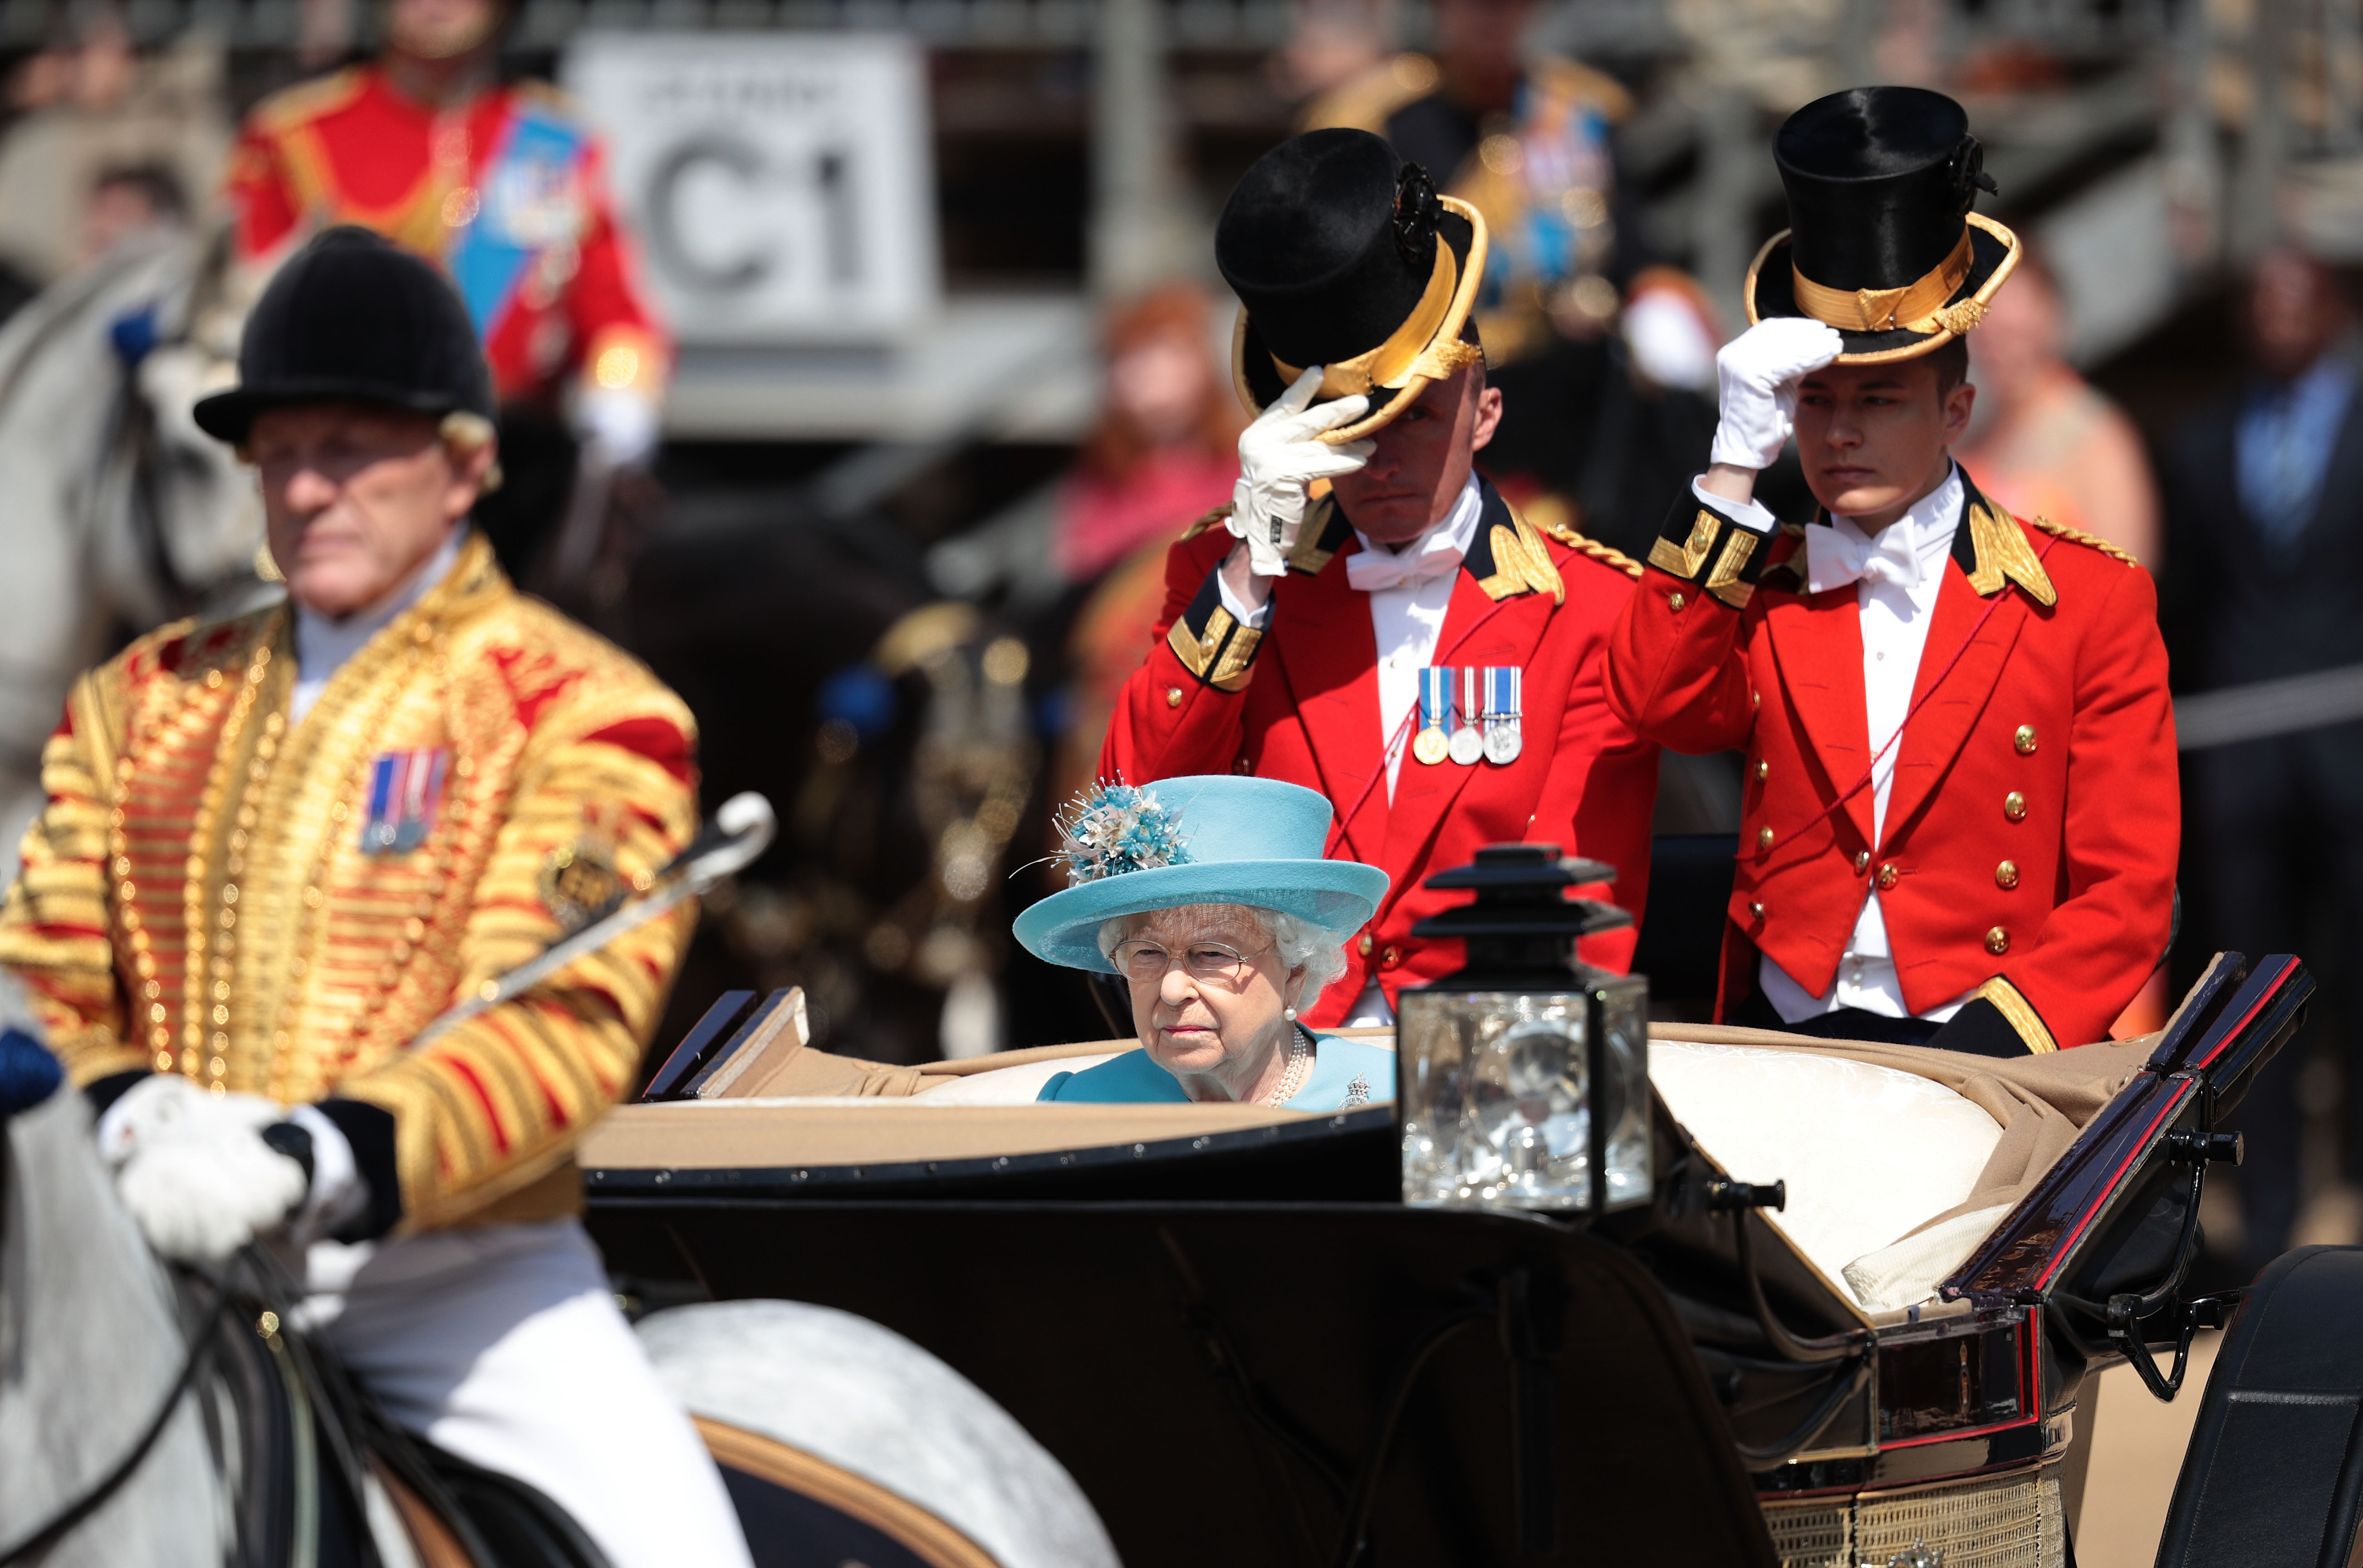 Queen Elizabeth II arrives at The Royal Horseguards during the Trooping The Colour ceremony on June 9, 2018 in London, England. The annual ceremony involving over 1,400 guardsmen and cavalry, is believed to have first been performed during the reign of King Charles II. The parade marks the official birthday of the Sovereign, even though the Queen's actual birthday is on April 21st